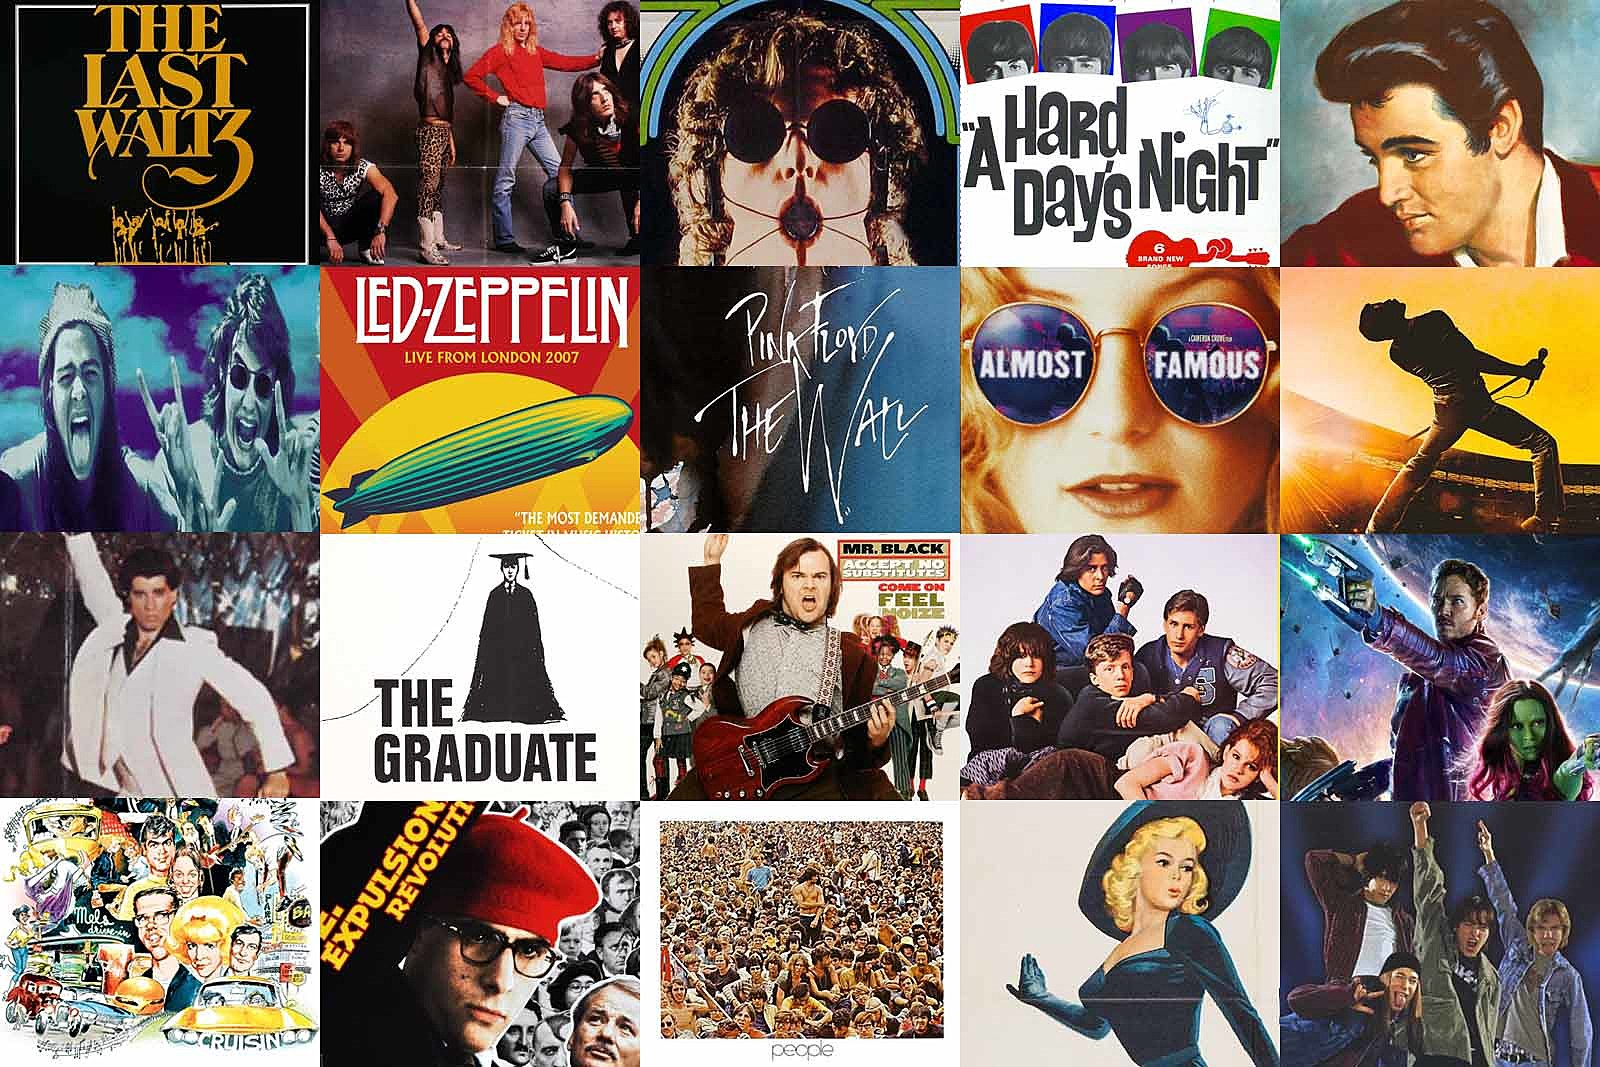 The Best Rock Movie From Every Year: 1955-2018